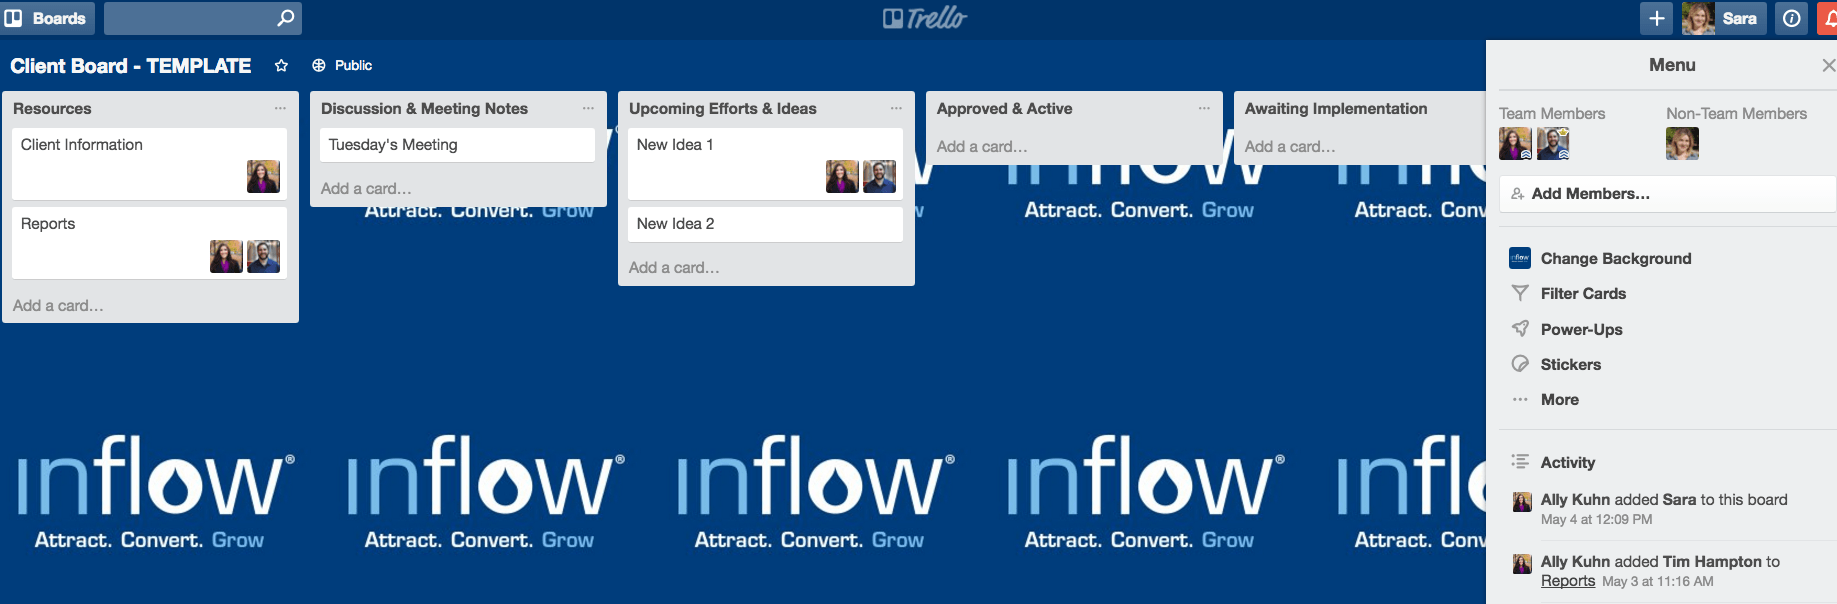 Setting up a user on Trello | Client board template